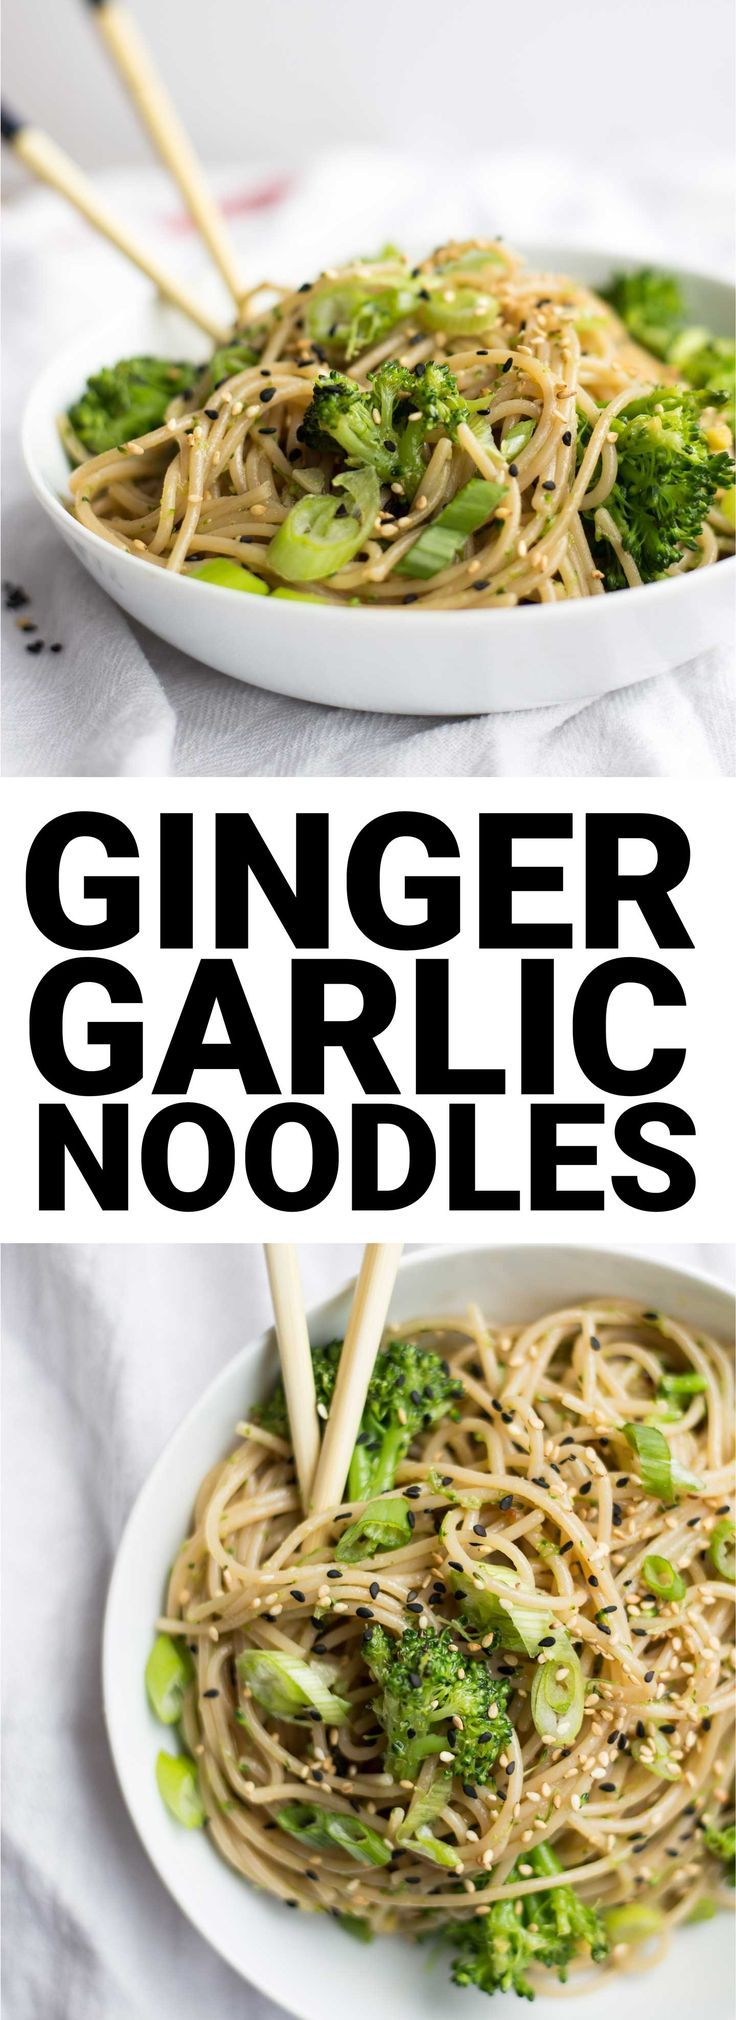 Easy Ginger Garlic Noodles: An easy 30 minute meal! Easily gluten free and vegan, and packed with ginger and garlic flavor. http://fooduzzi.com recipe